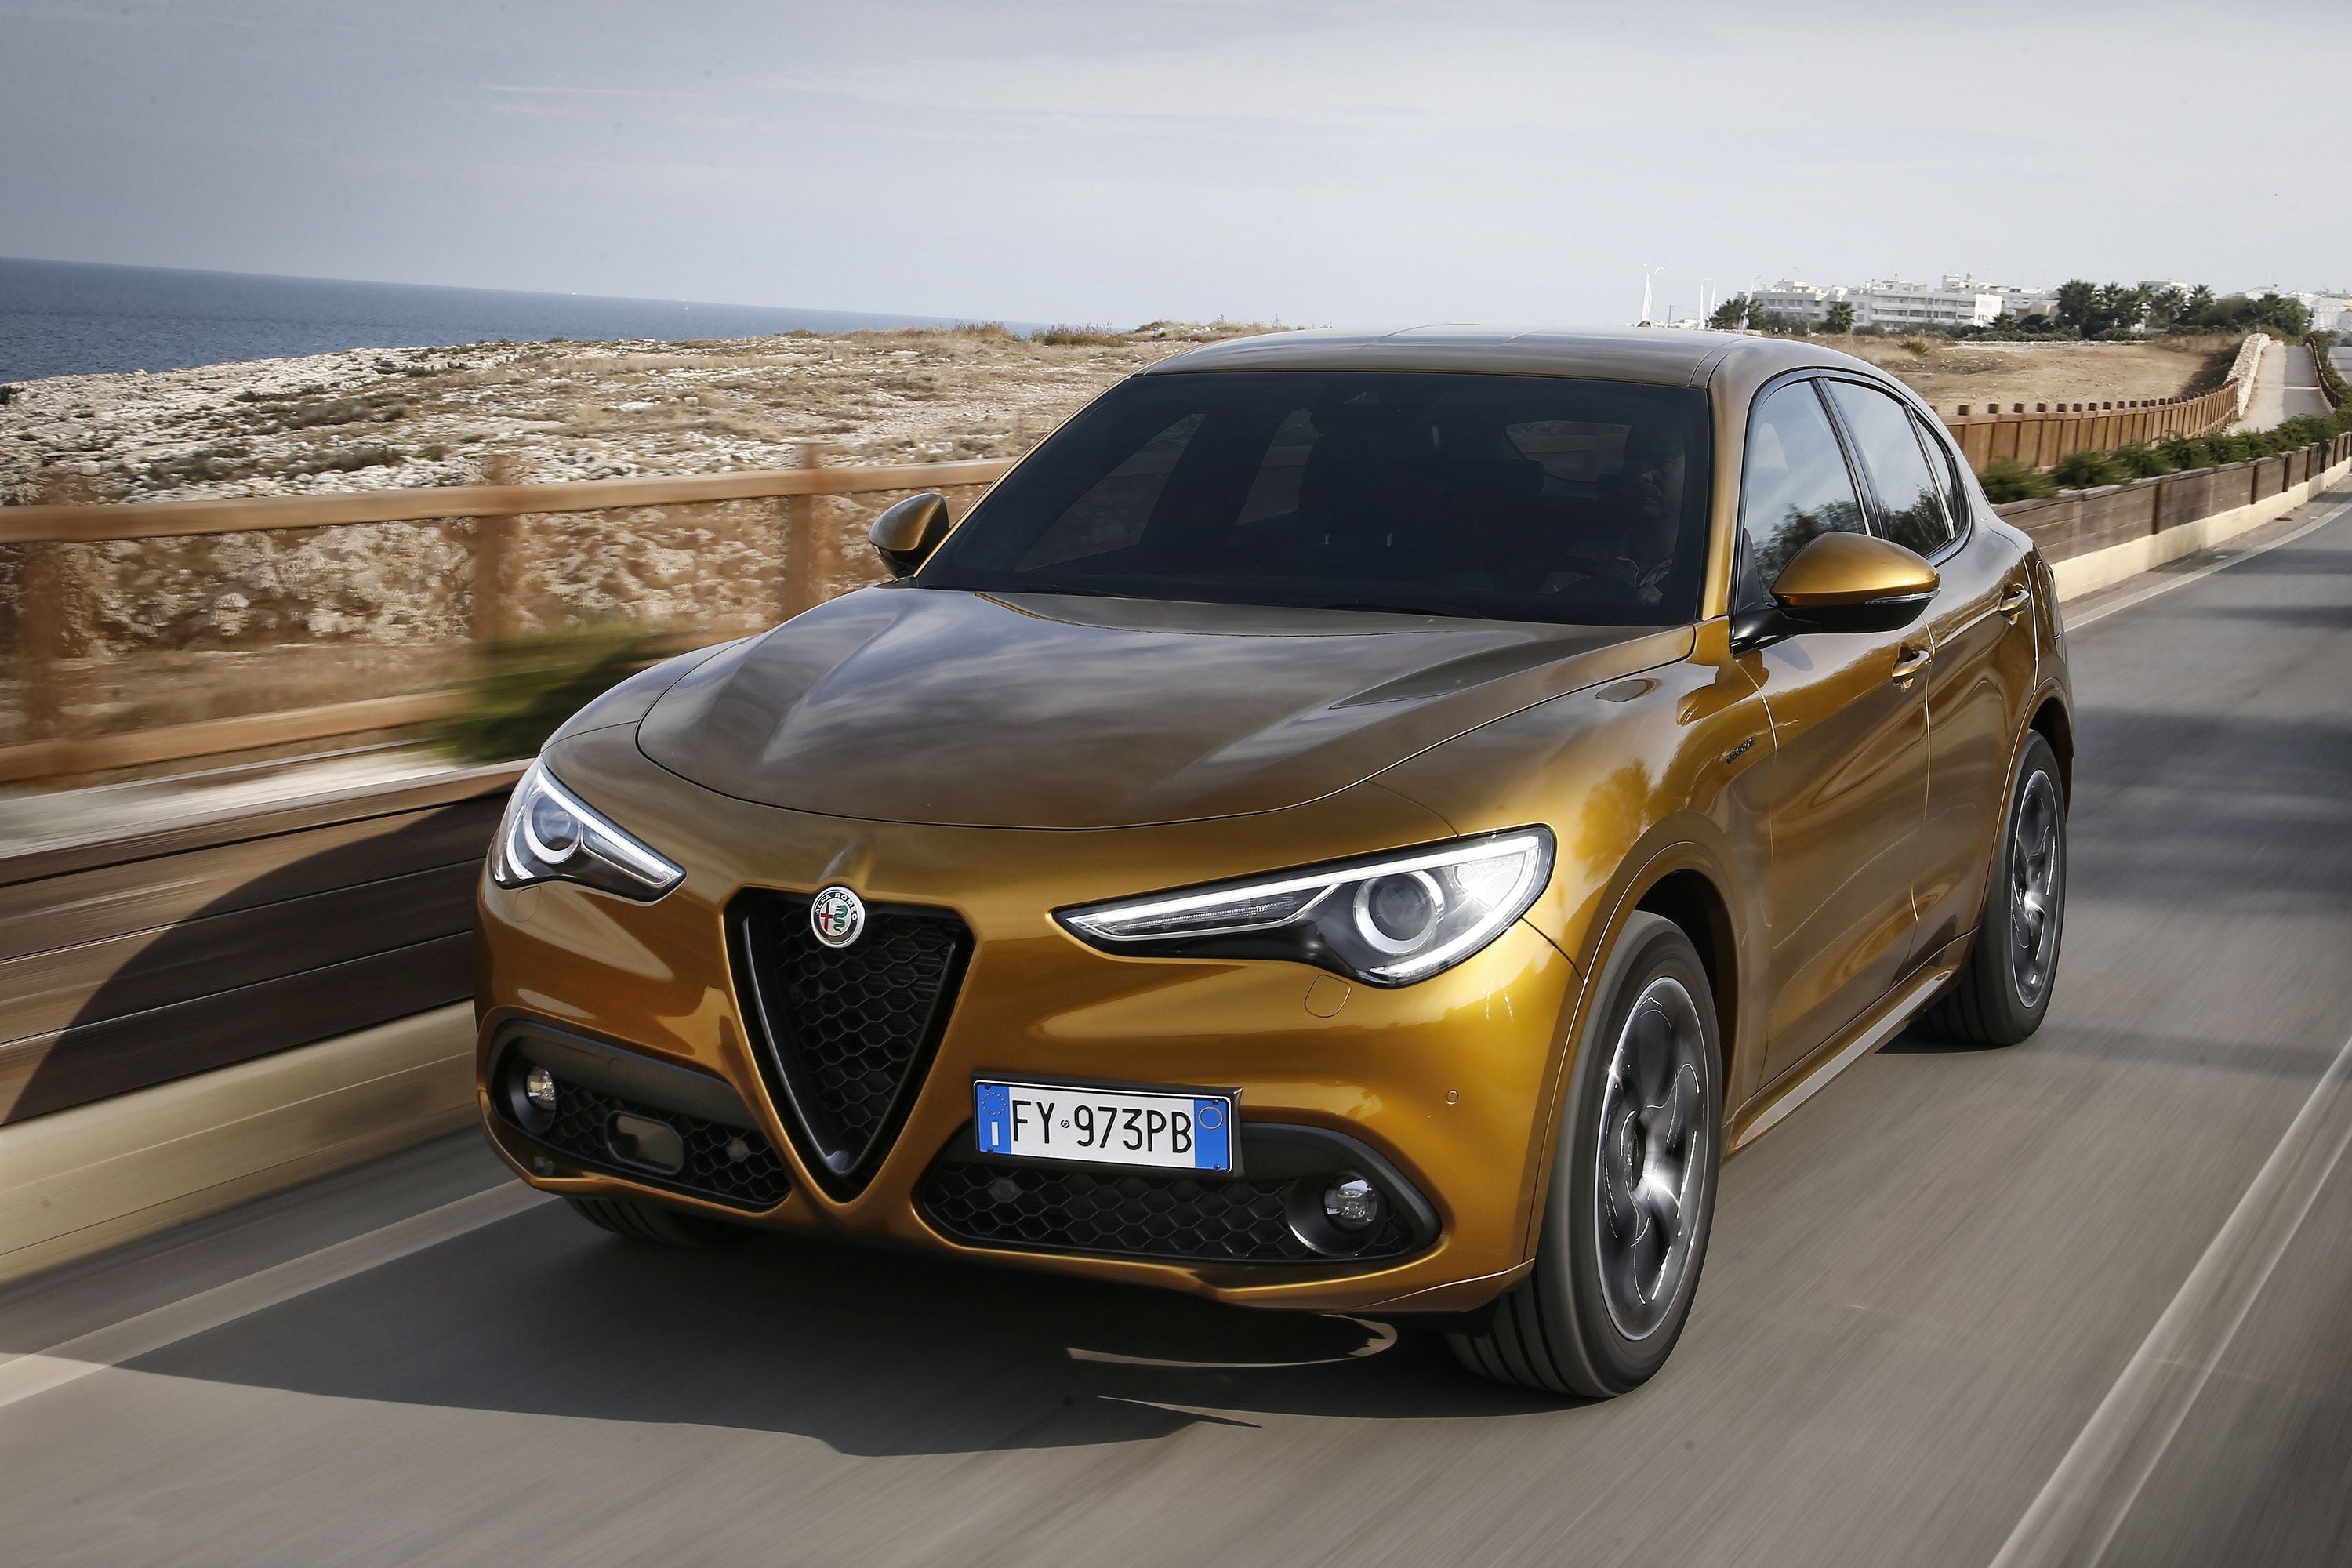 Front view of Alfa Stelvio driving on a road